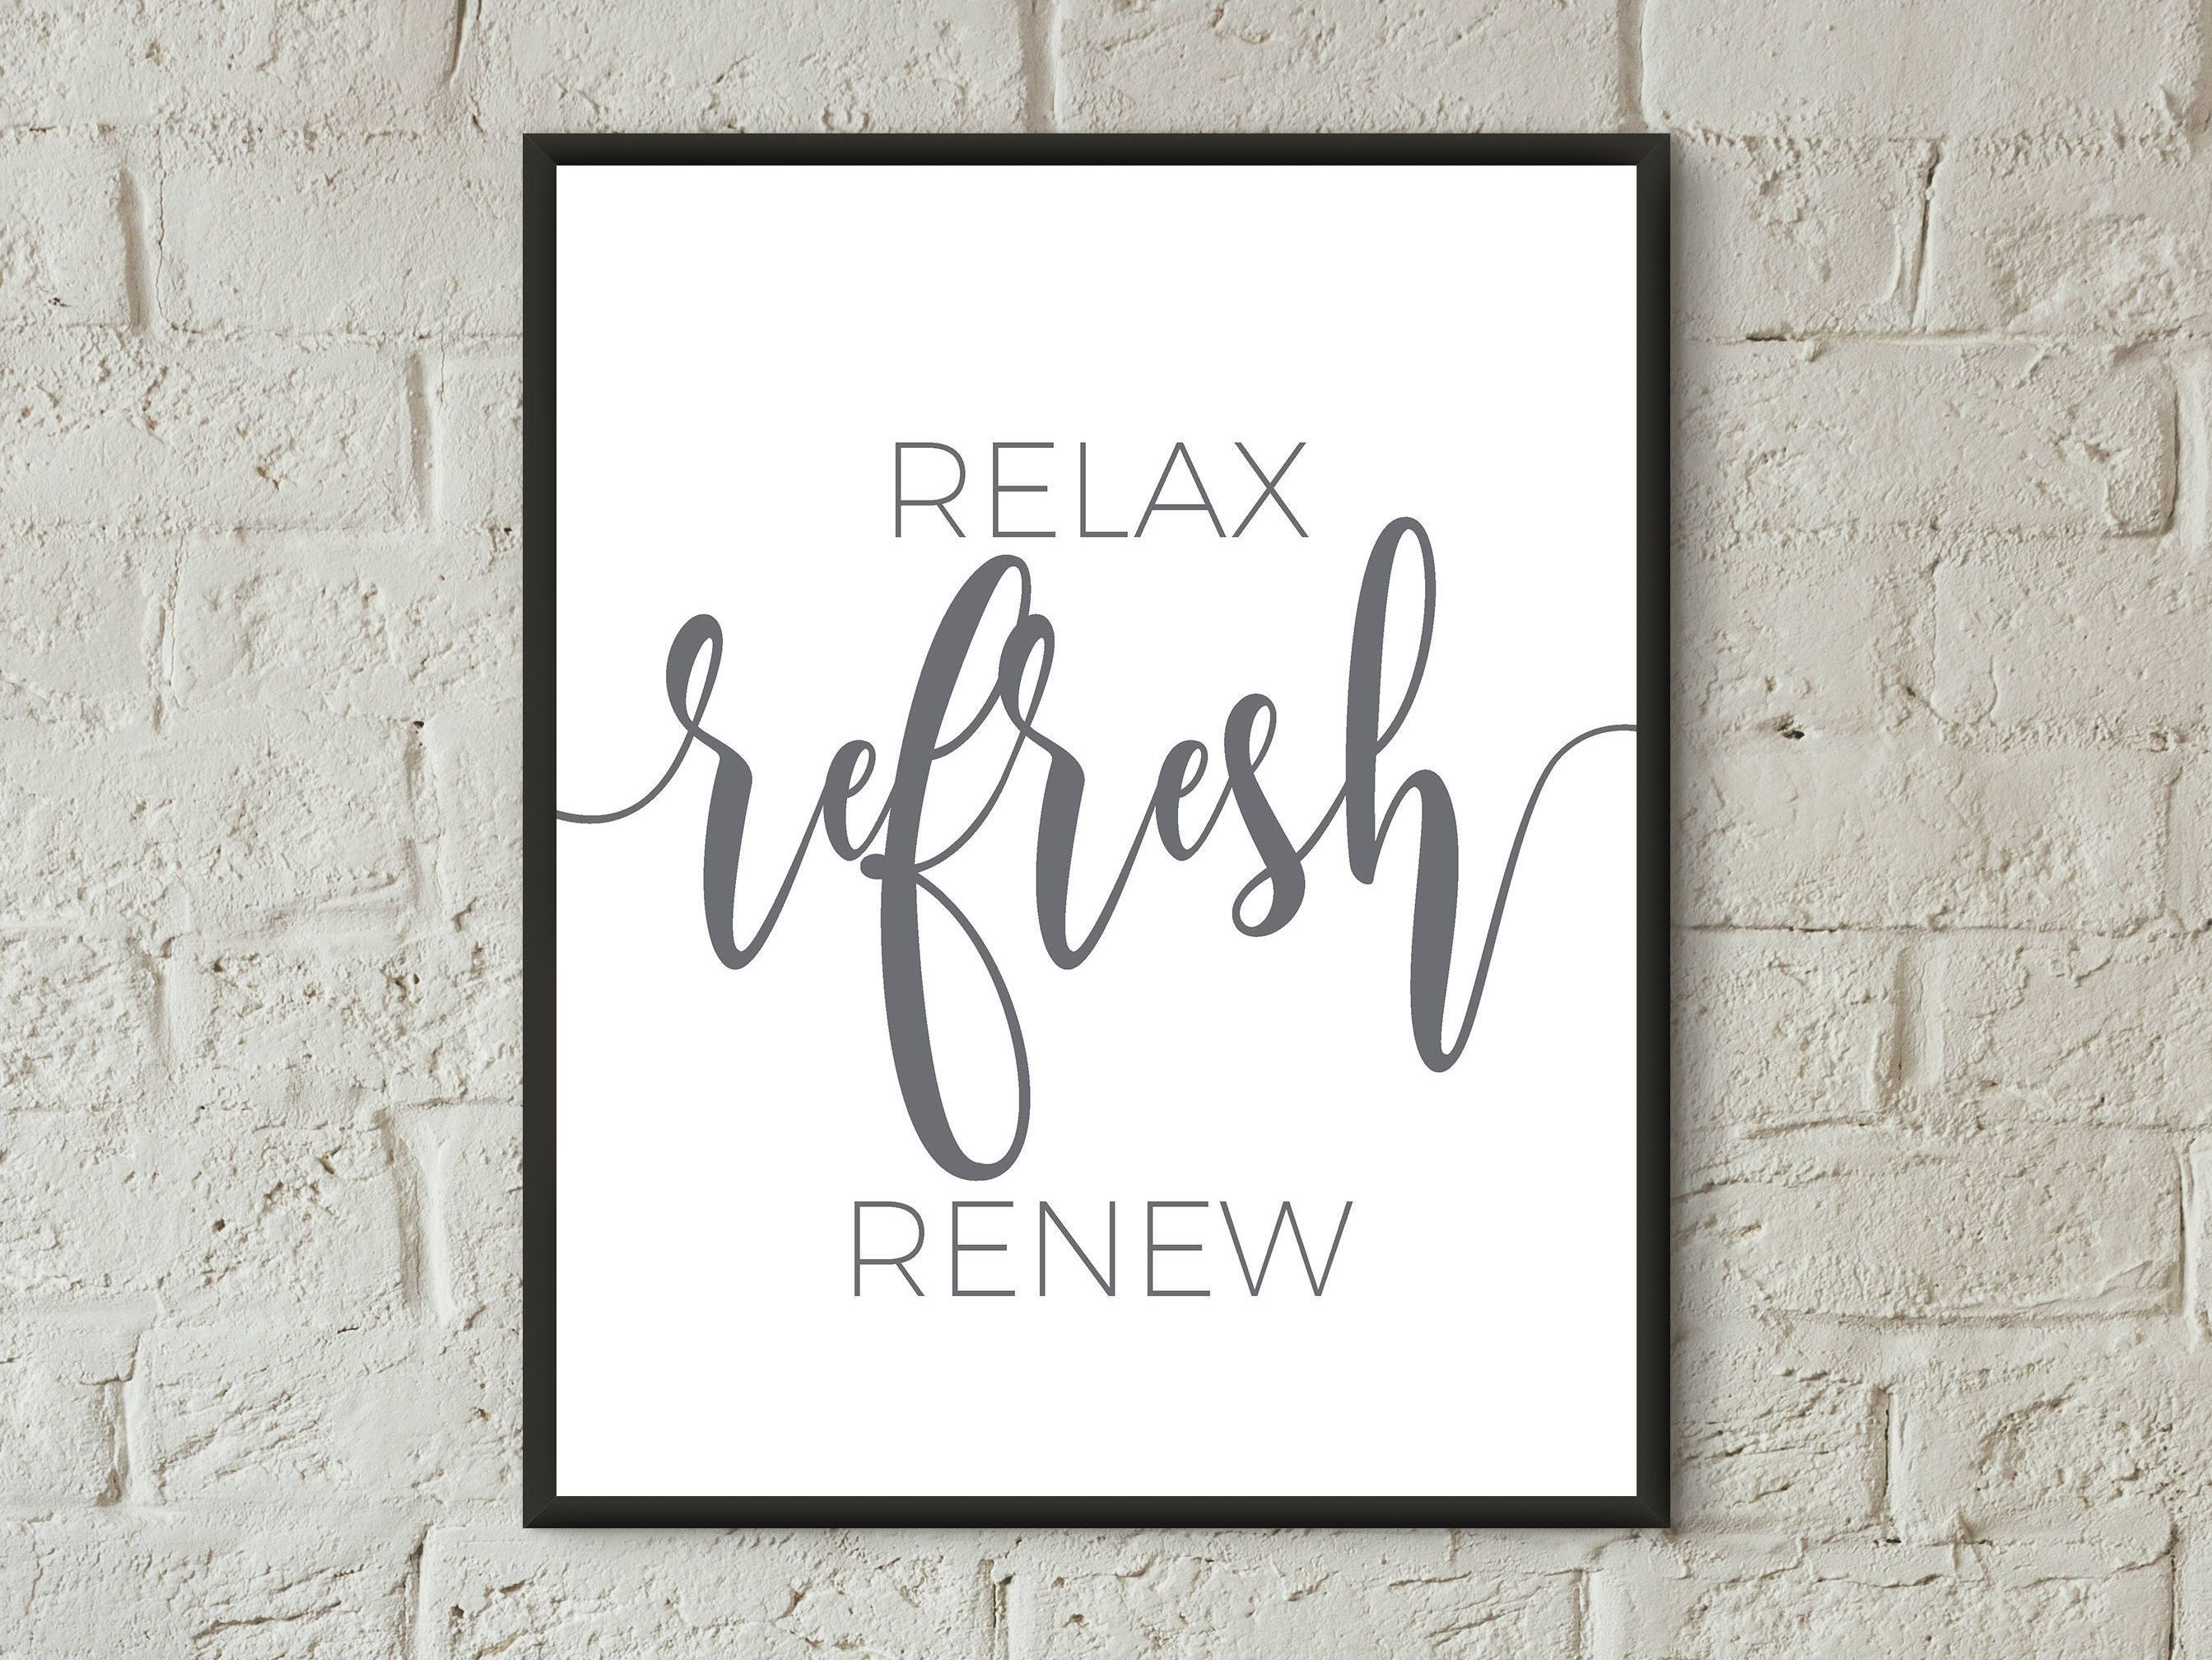 Relax Refresh Renew Bathroom Prints Wall Art Digital Download Quote Print  Relax Bathroom Sign Bathroom Wall Decor Guest Room Printable Art